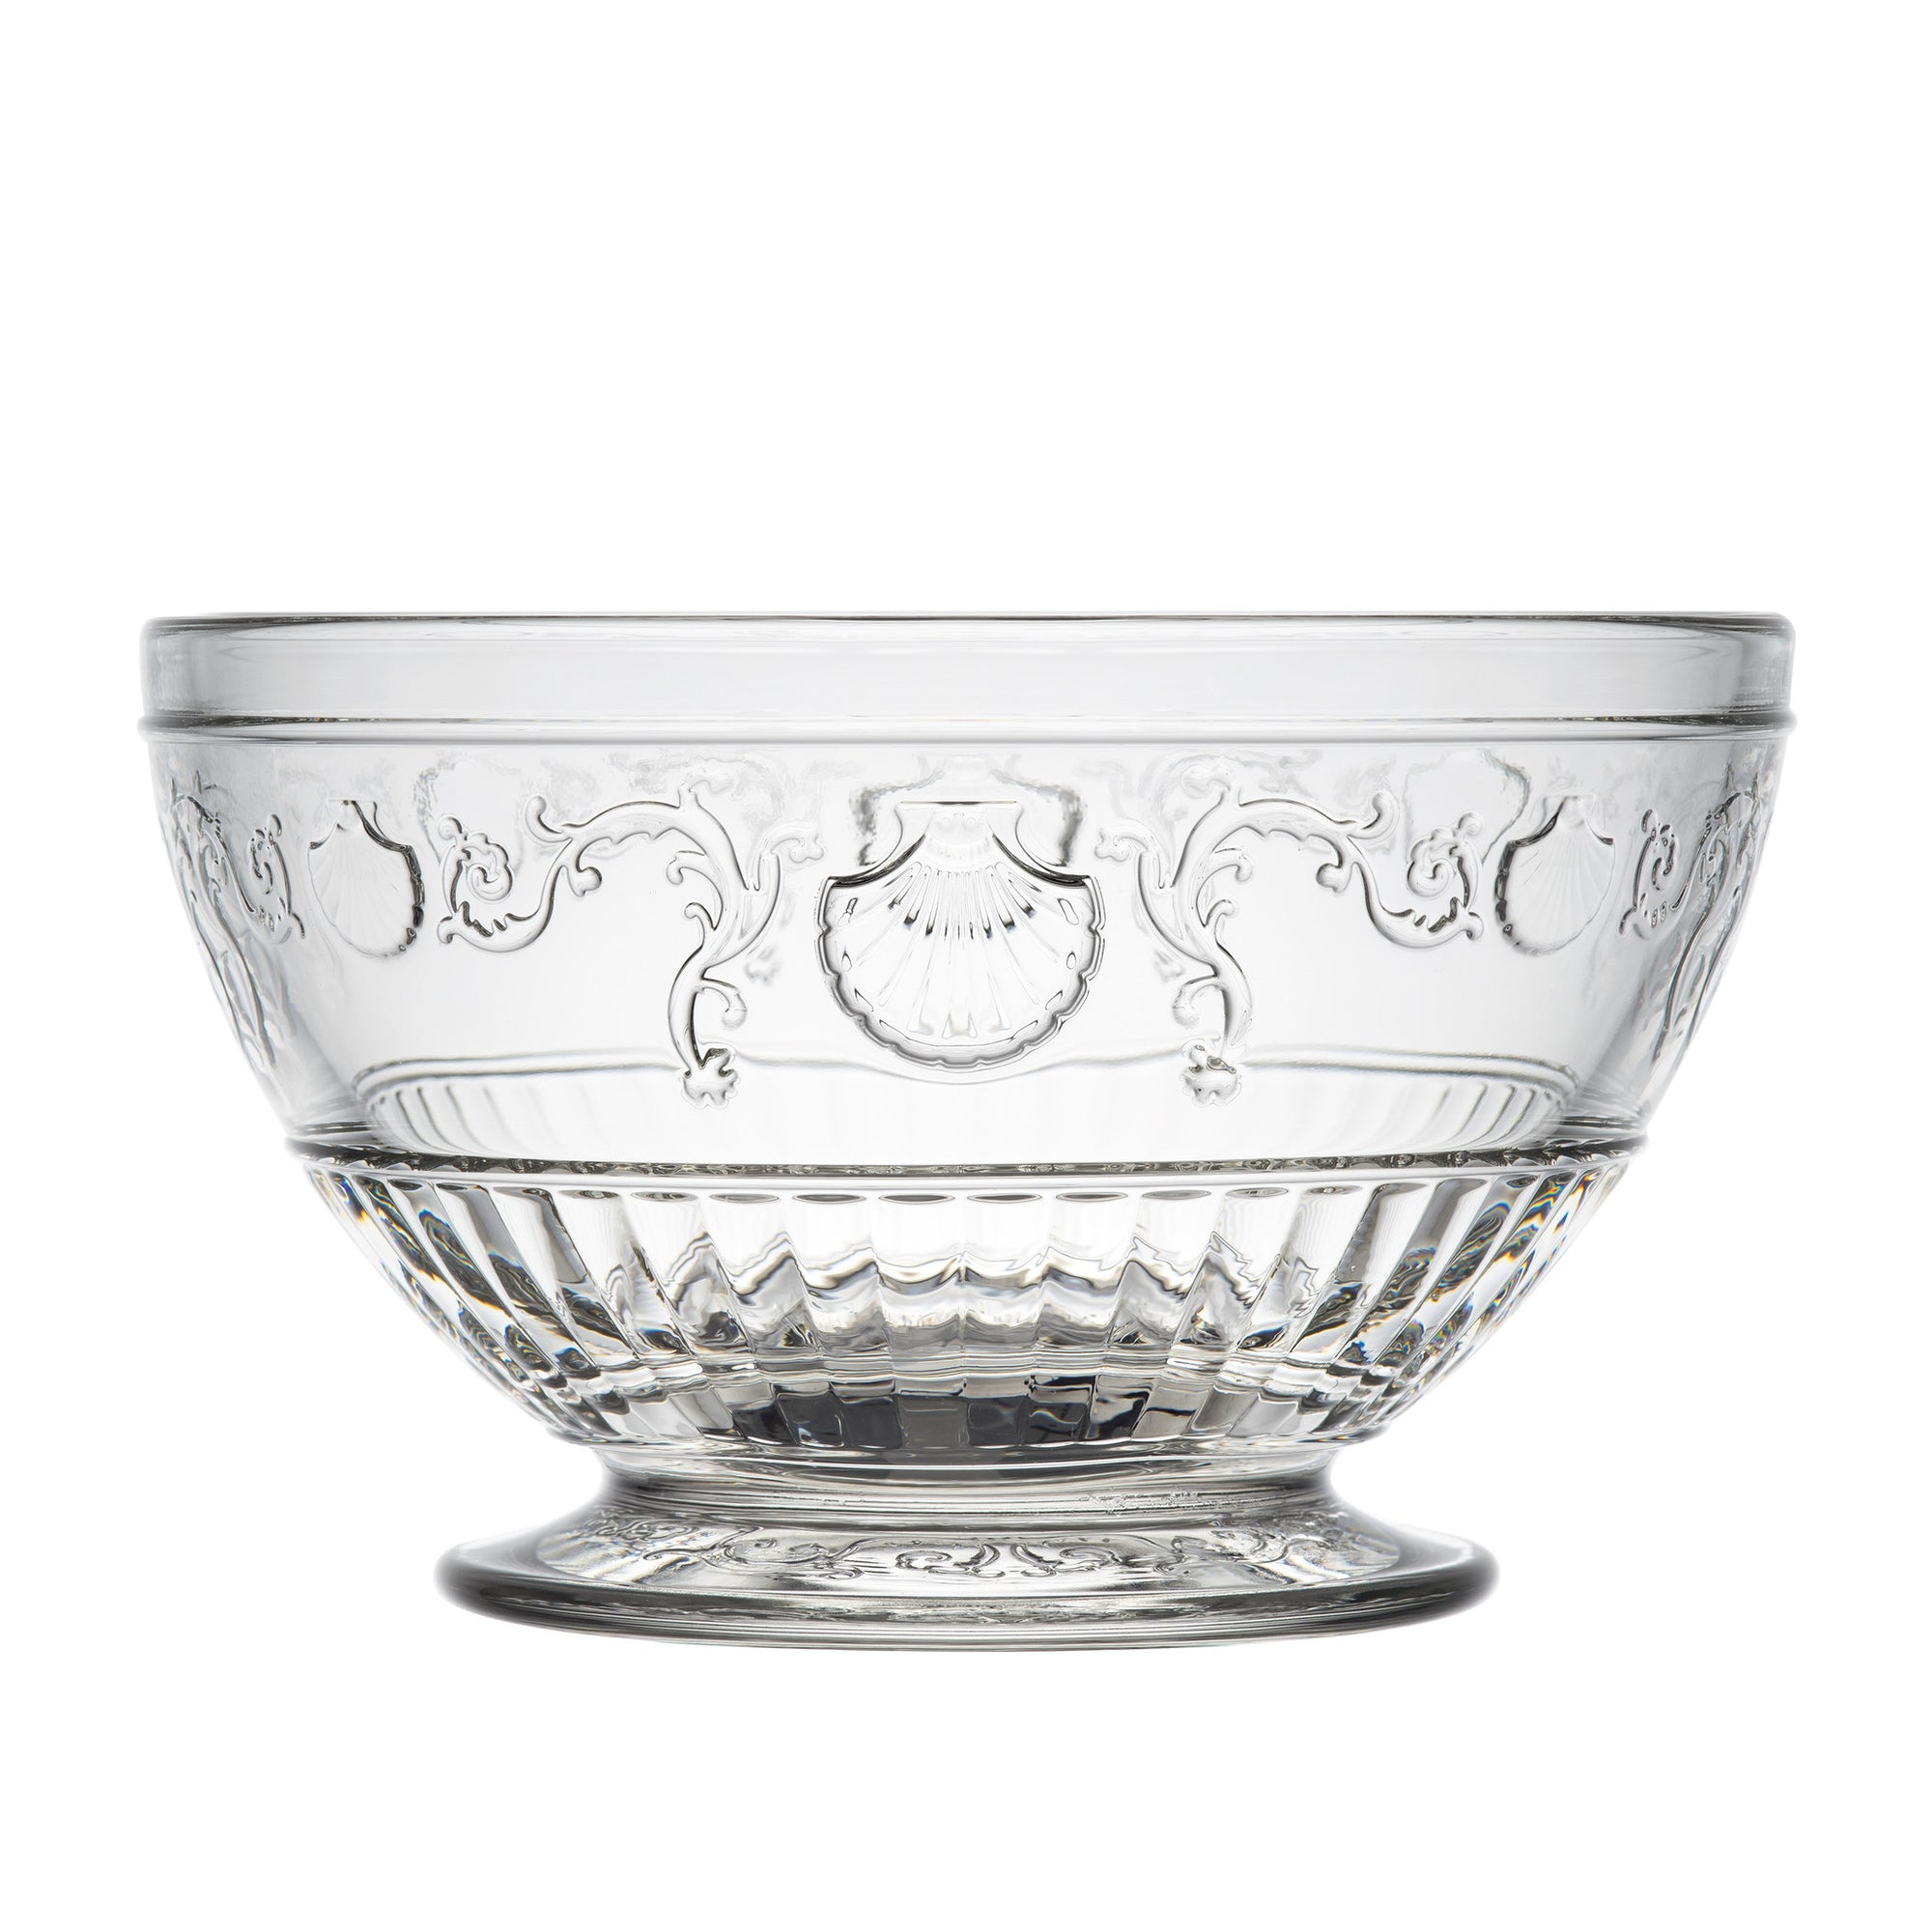 La Rocher Versailles Footed Bowl 21oz-Glassware-PG-Premier Gift -La Rochere-Putti Fine Furnishings